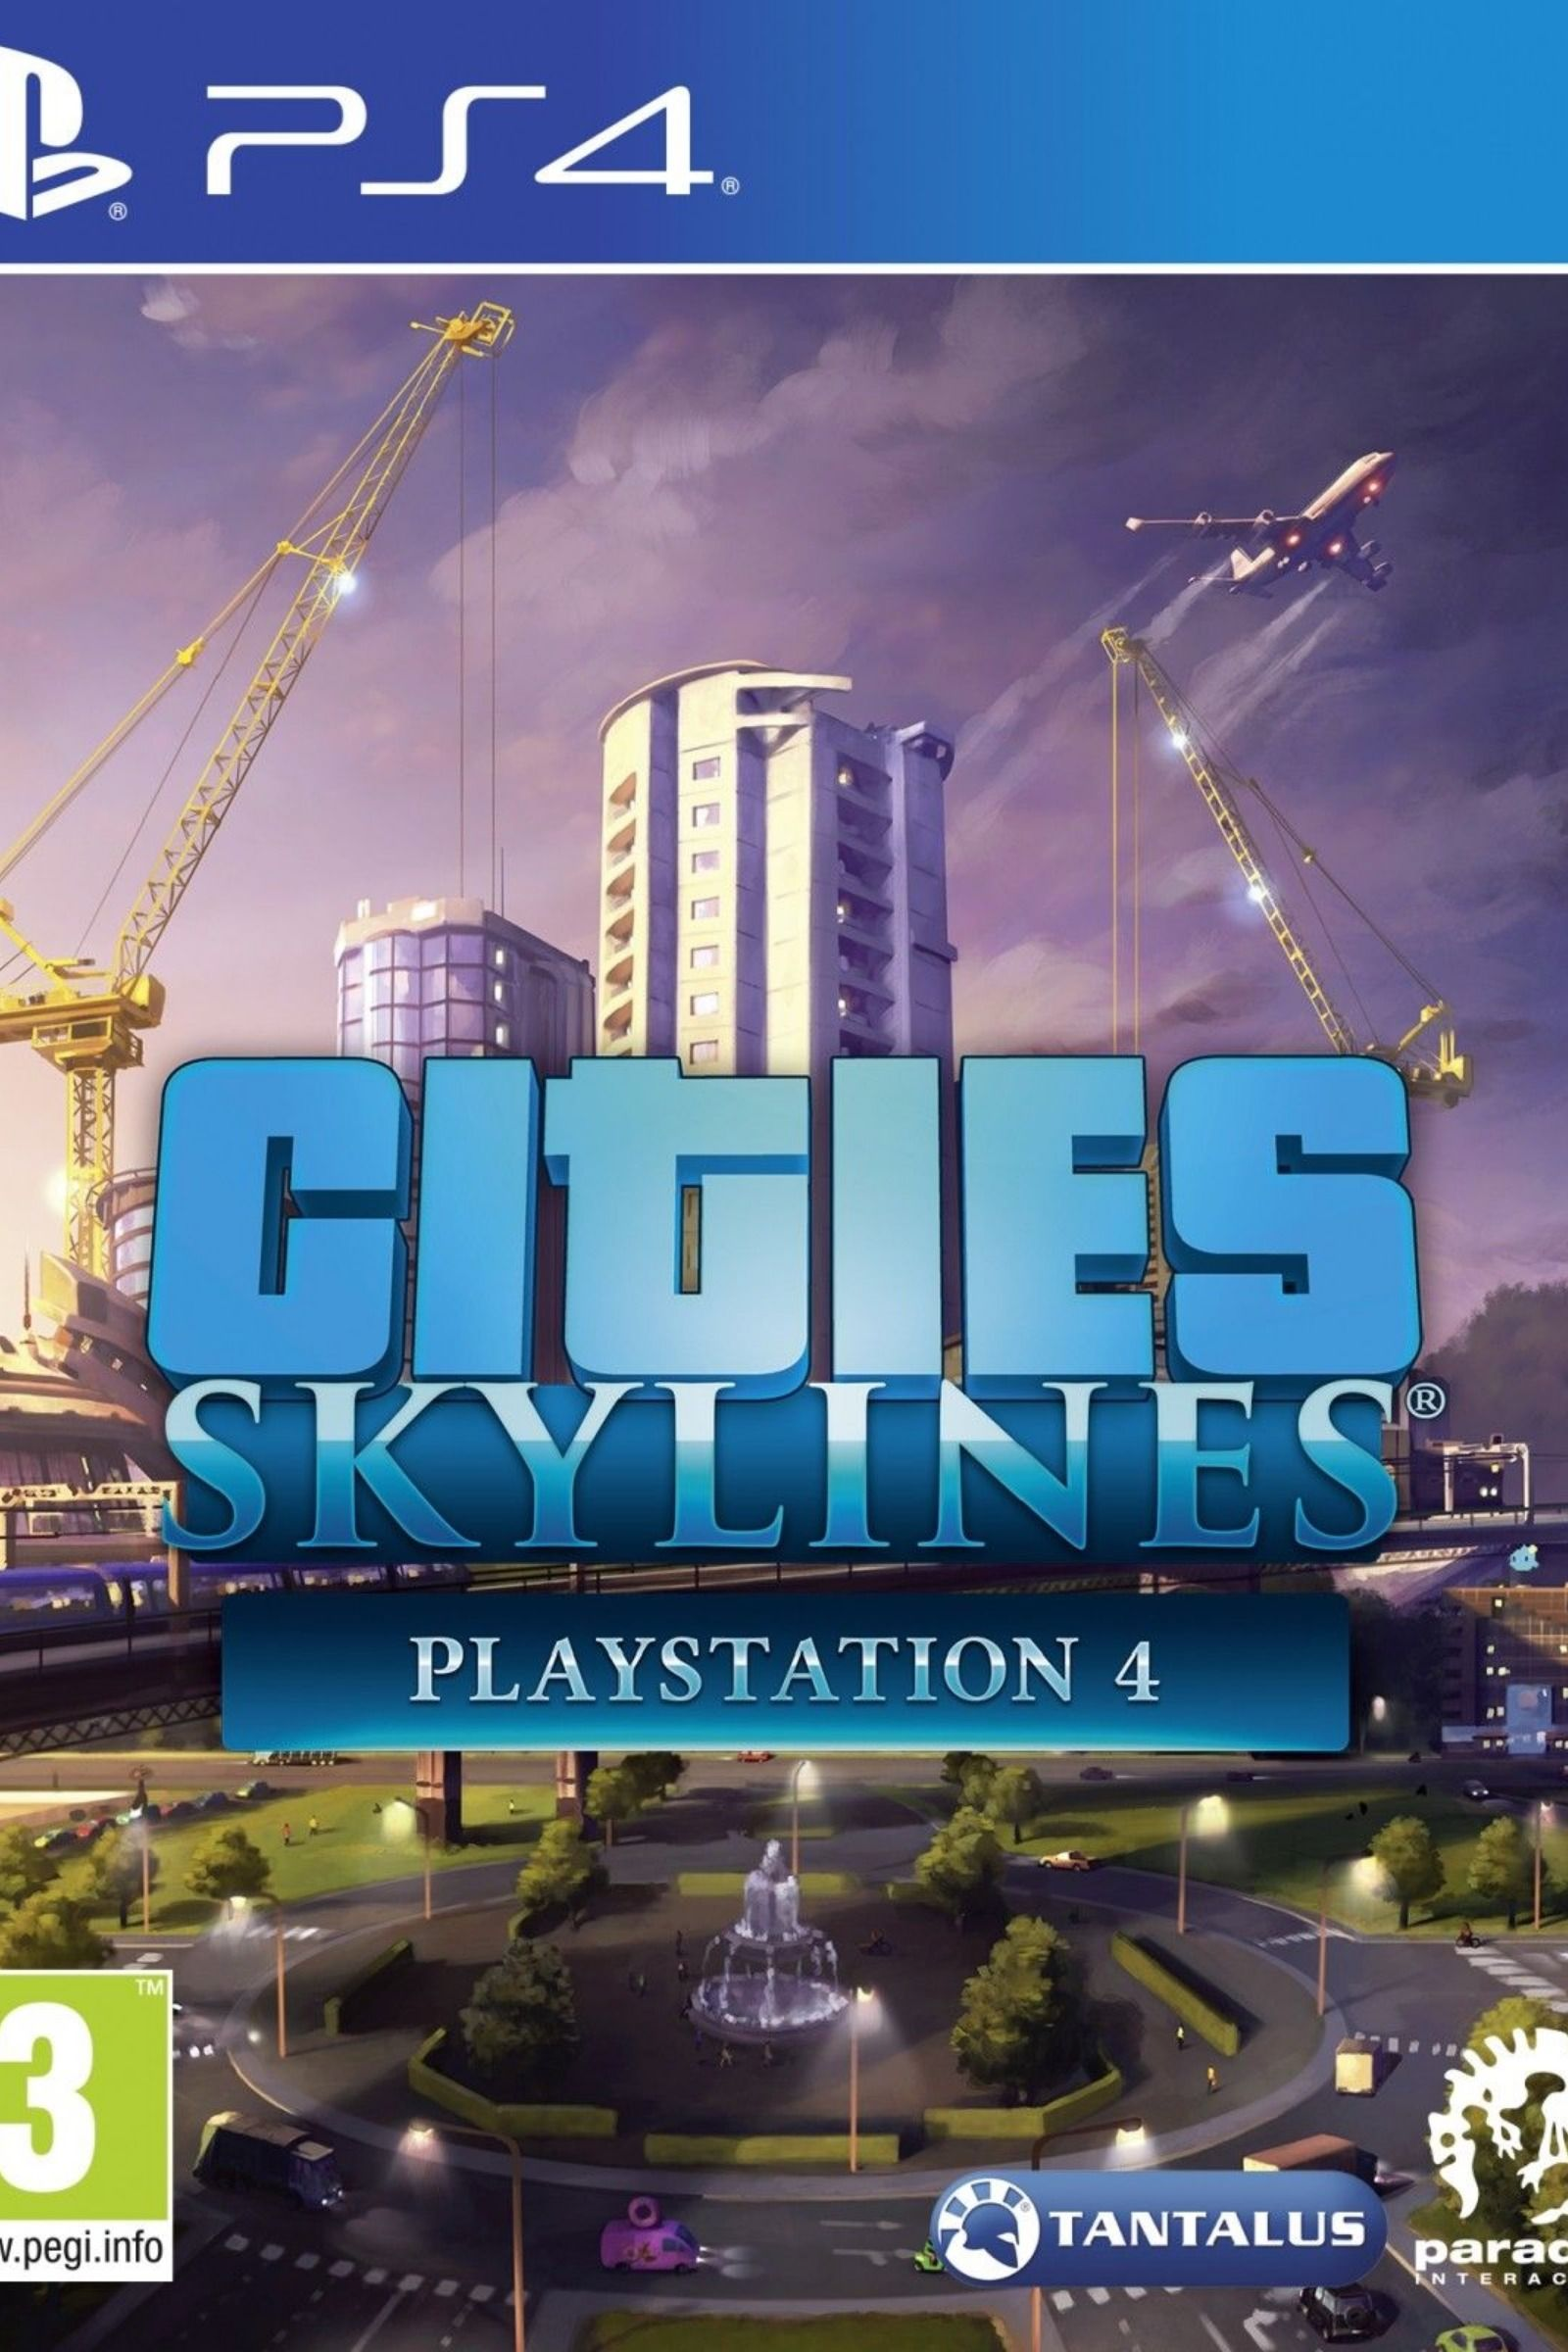 Cities Skylines Deluxe Edition Cheap Video Game Artwork Gameplay Concept Art Gaming Ad Videogames Gaming City Building Game City Skylines Game Skyline